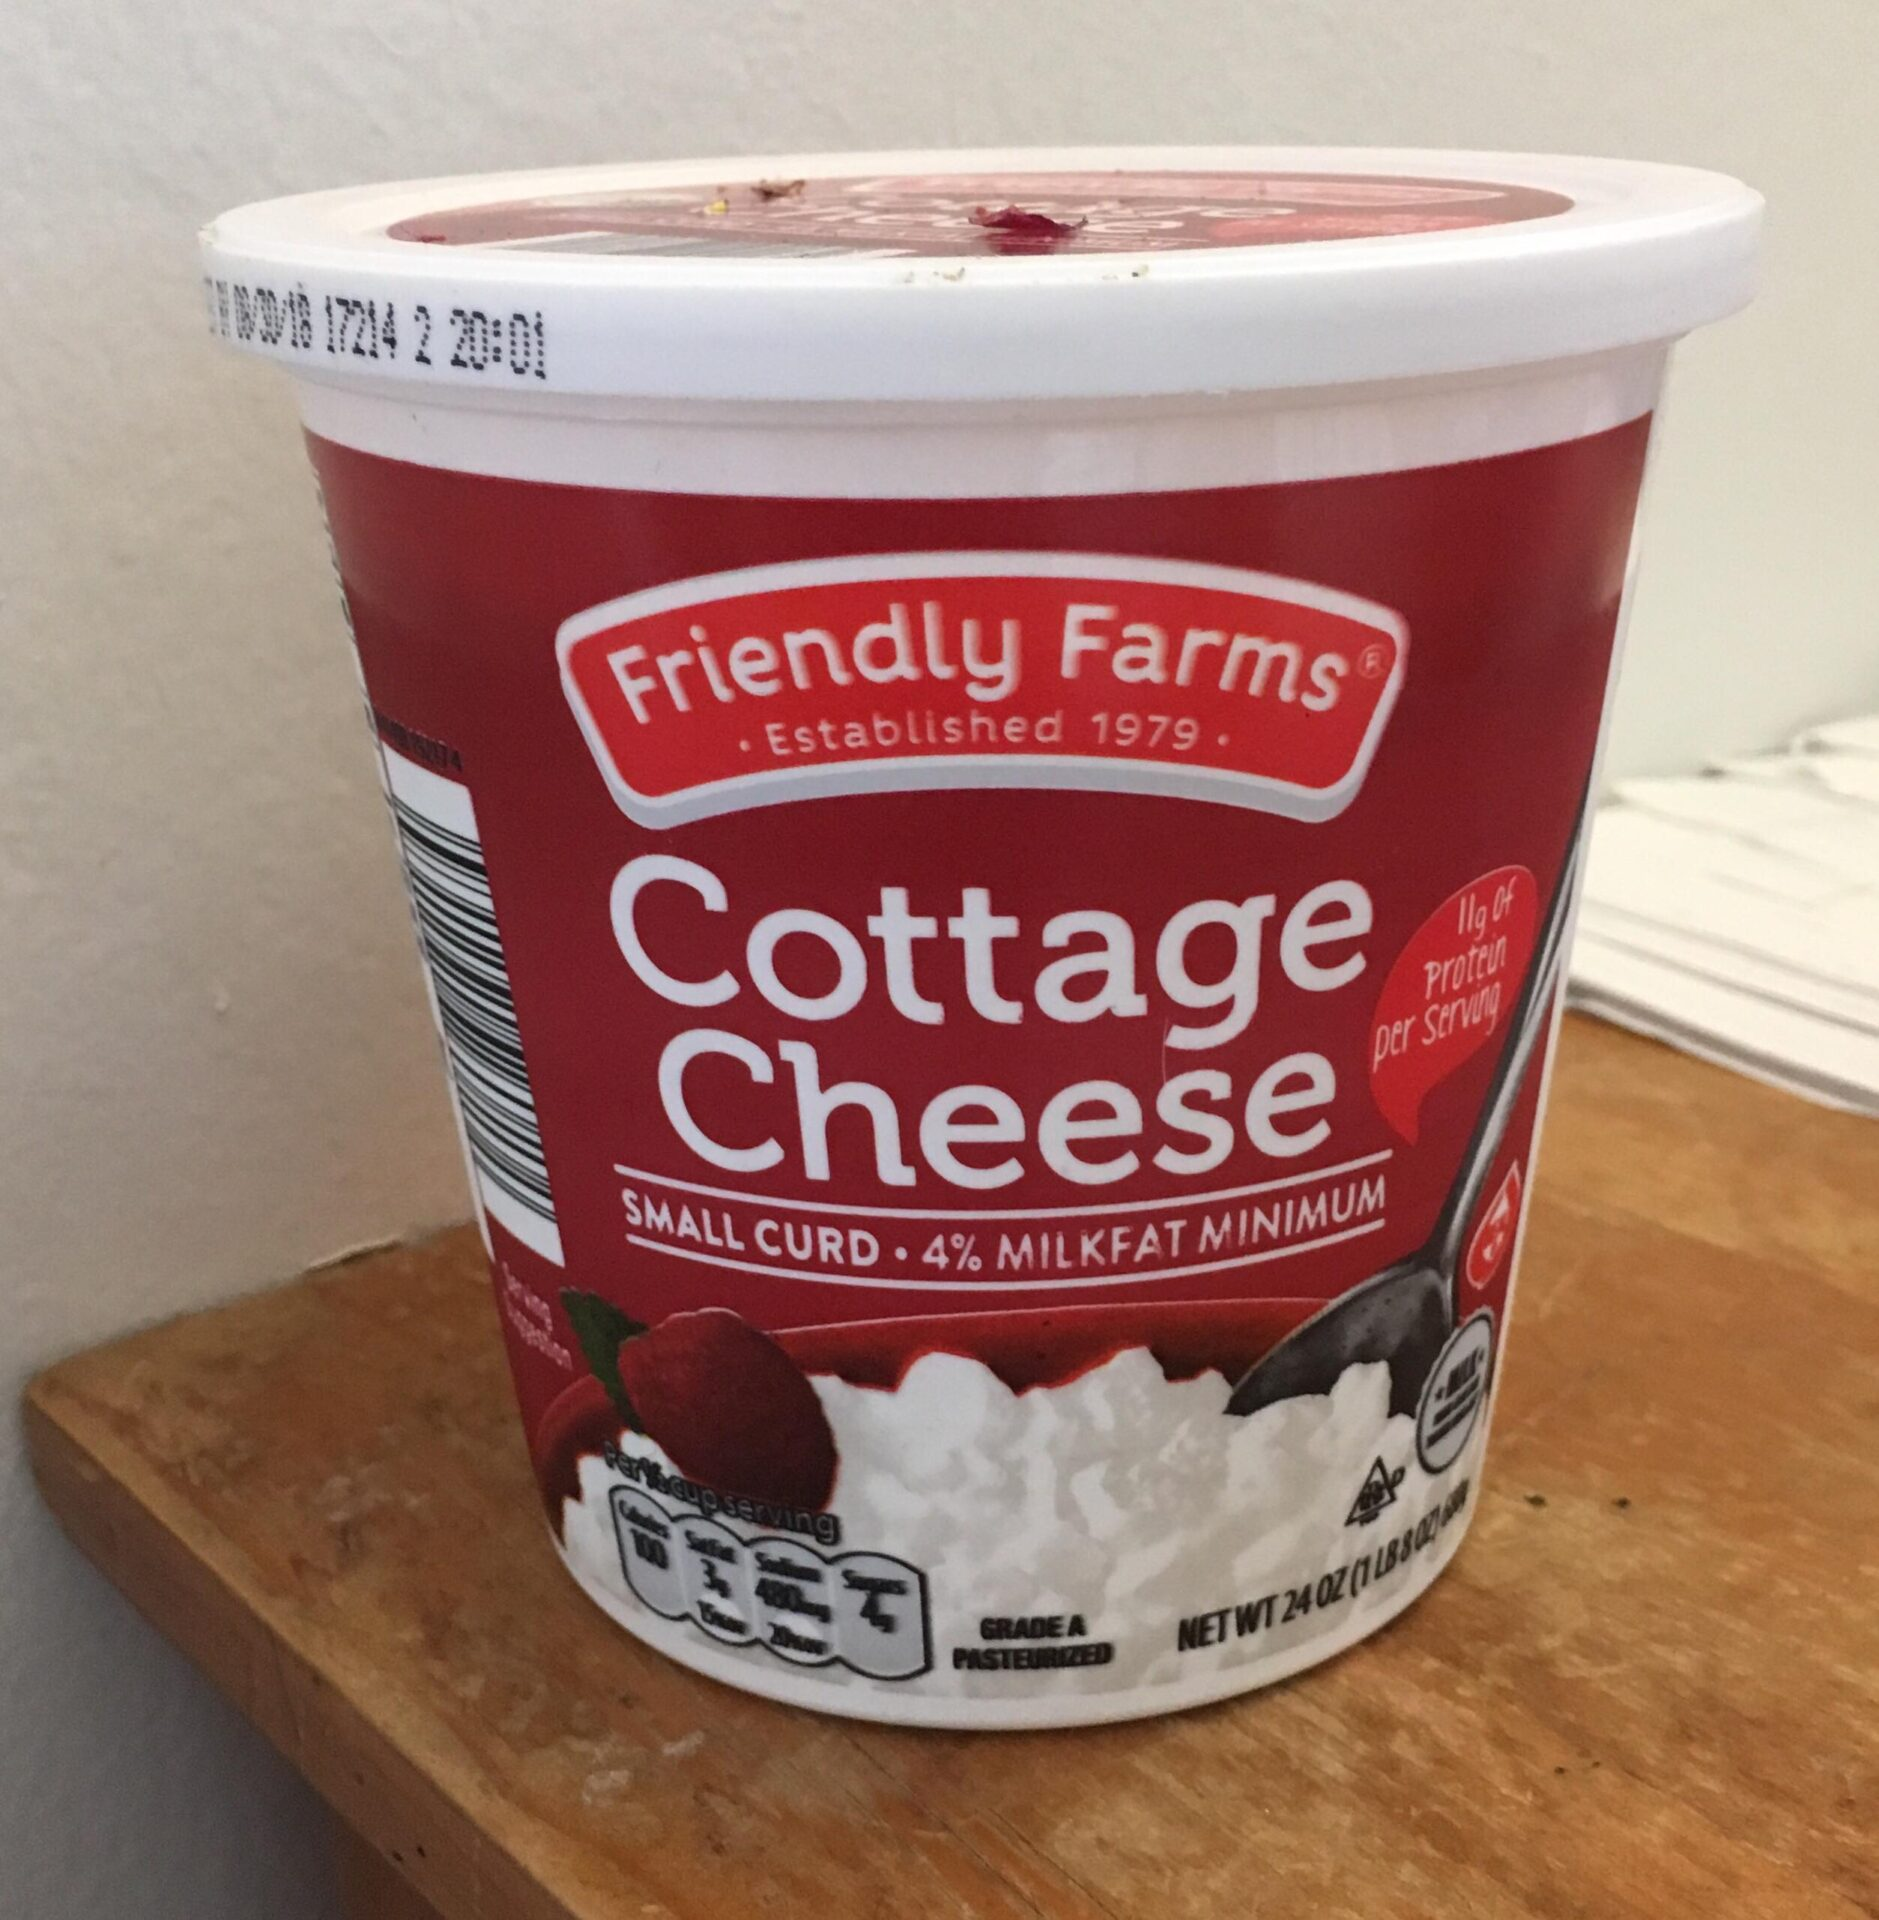 Friendly Farms Cottage Cheese Aldi Reviewer